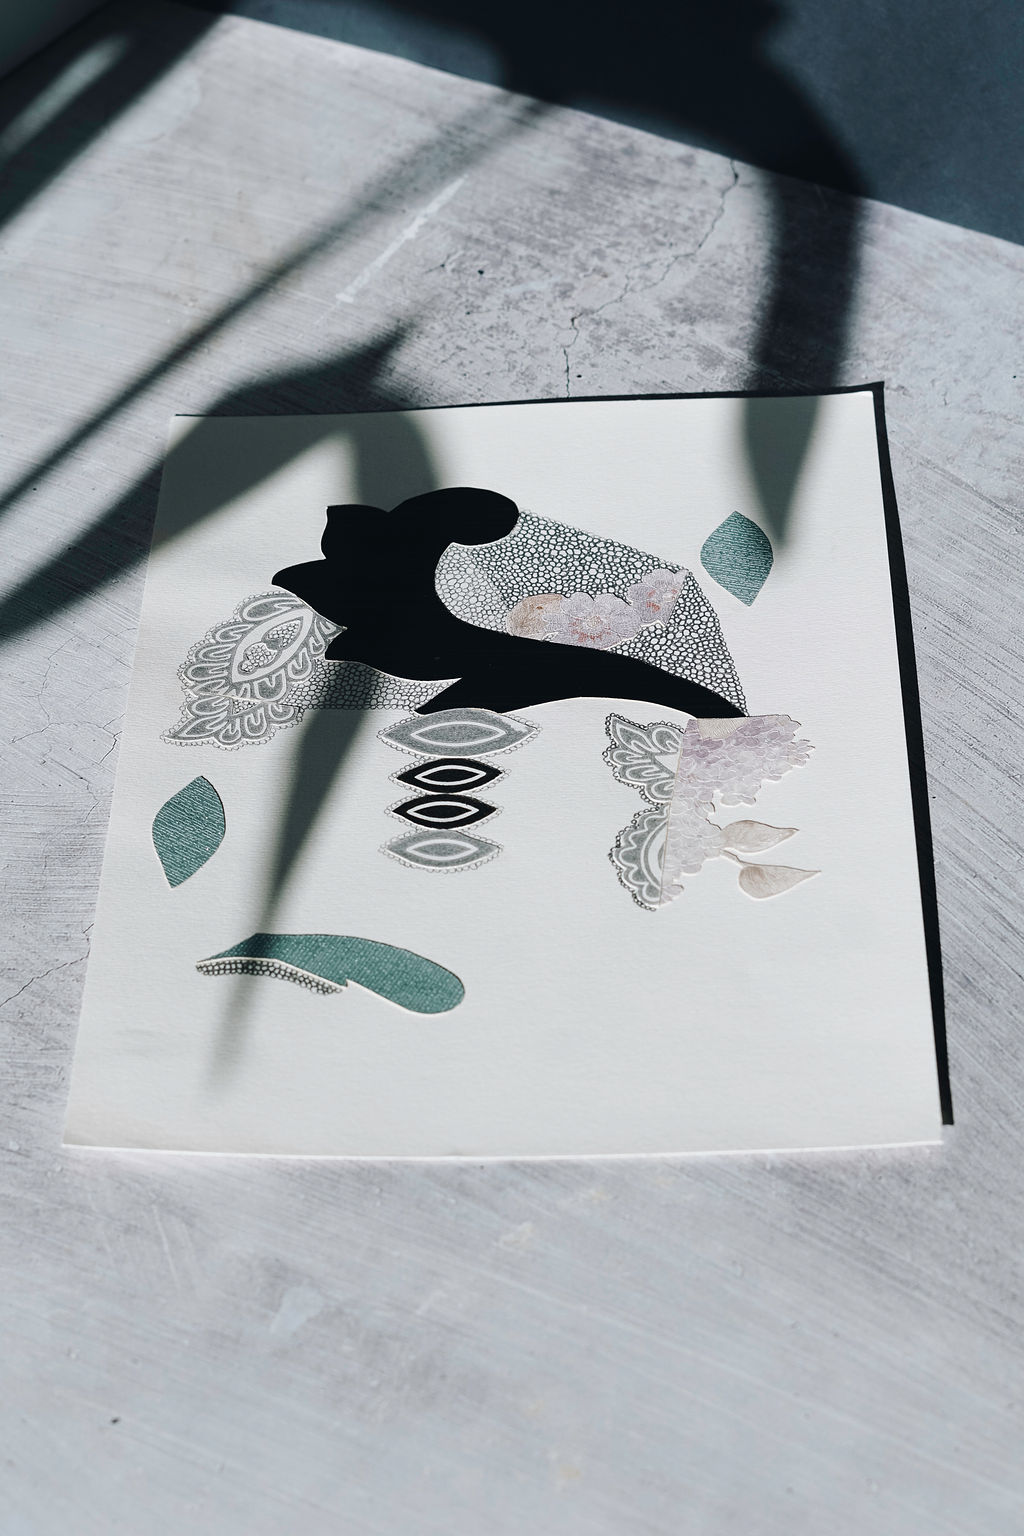 - A little peek from Katherine Marmaras and she is a collage, print, ceramic & textiles artist whoI met on Instagram. If only we lived closer as I imagine lots of coffee & catchups. We have three of her works on paper from the Morphe series. They are available online or in person.